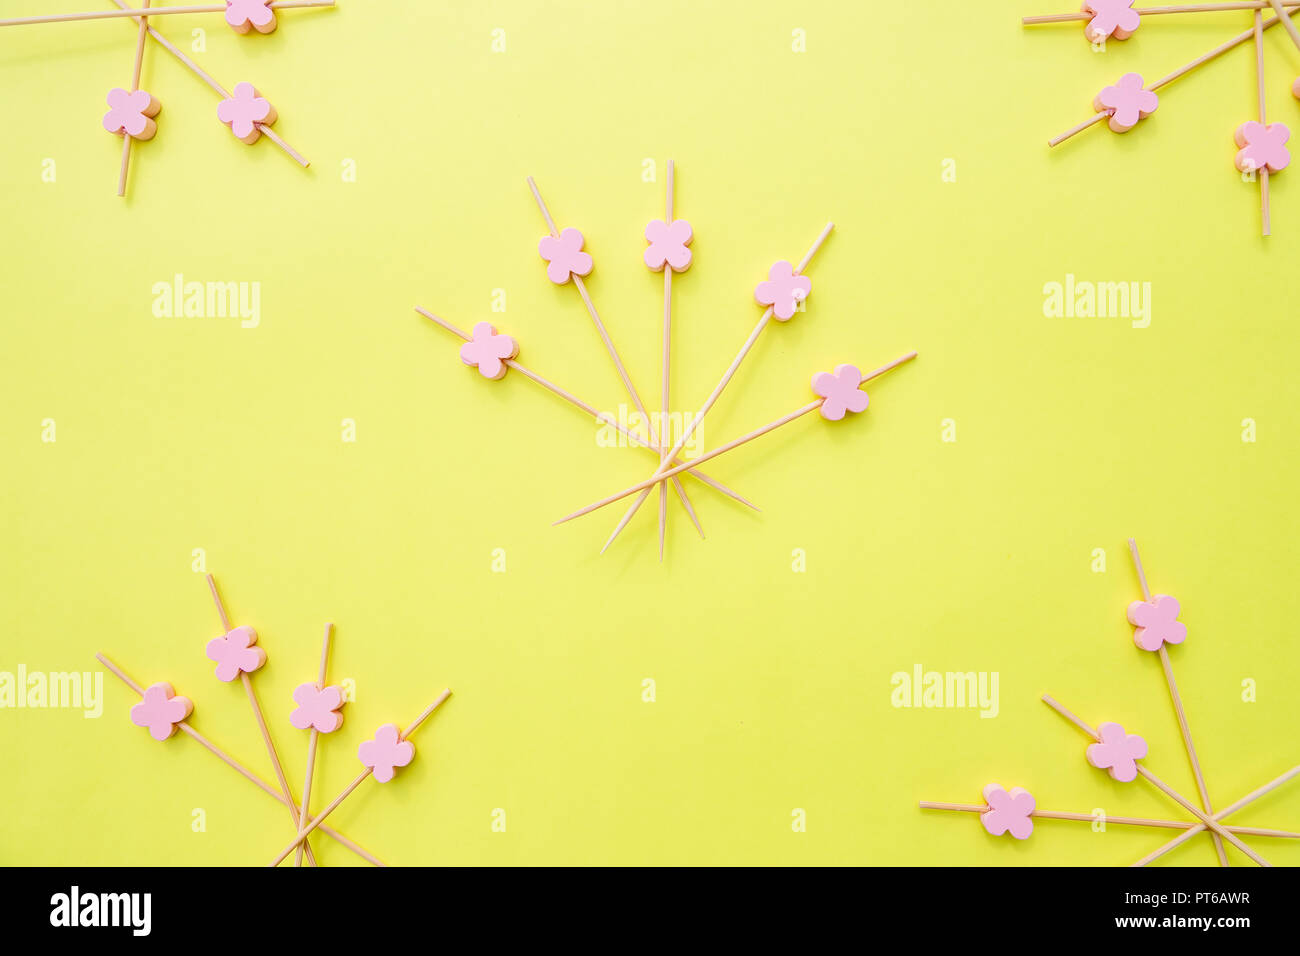 Catering concept. wooden bamboo sticks, Skewers for the preparation of canapes. Props for snack food. Wooden sticks in the form of a fan isolated on yellow background. - Stock Image